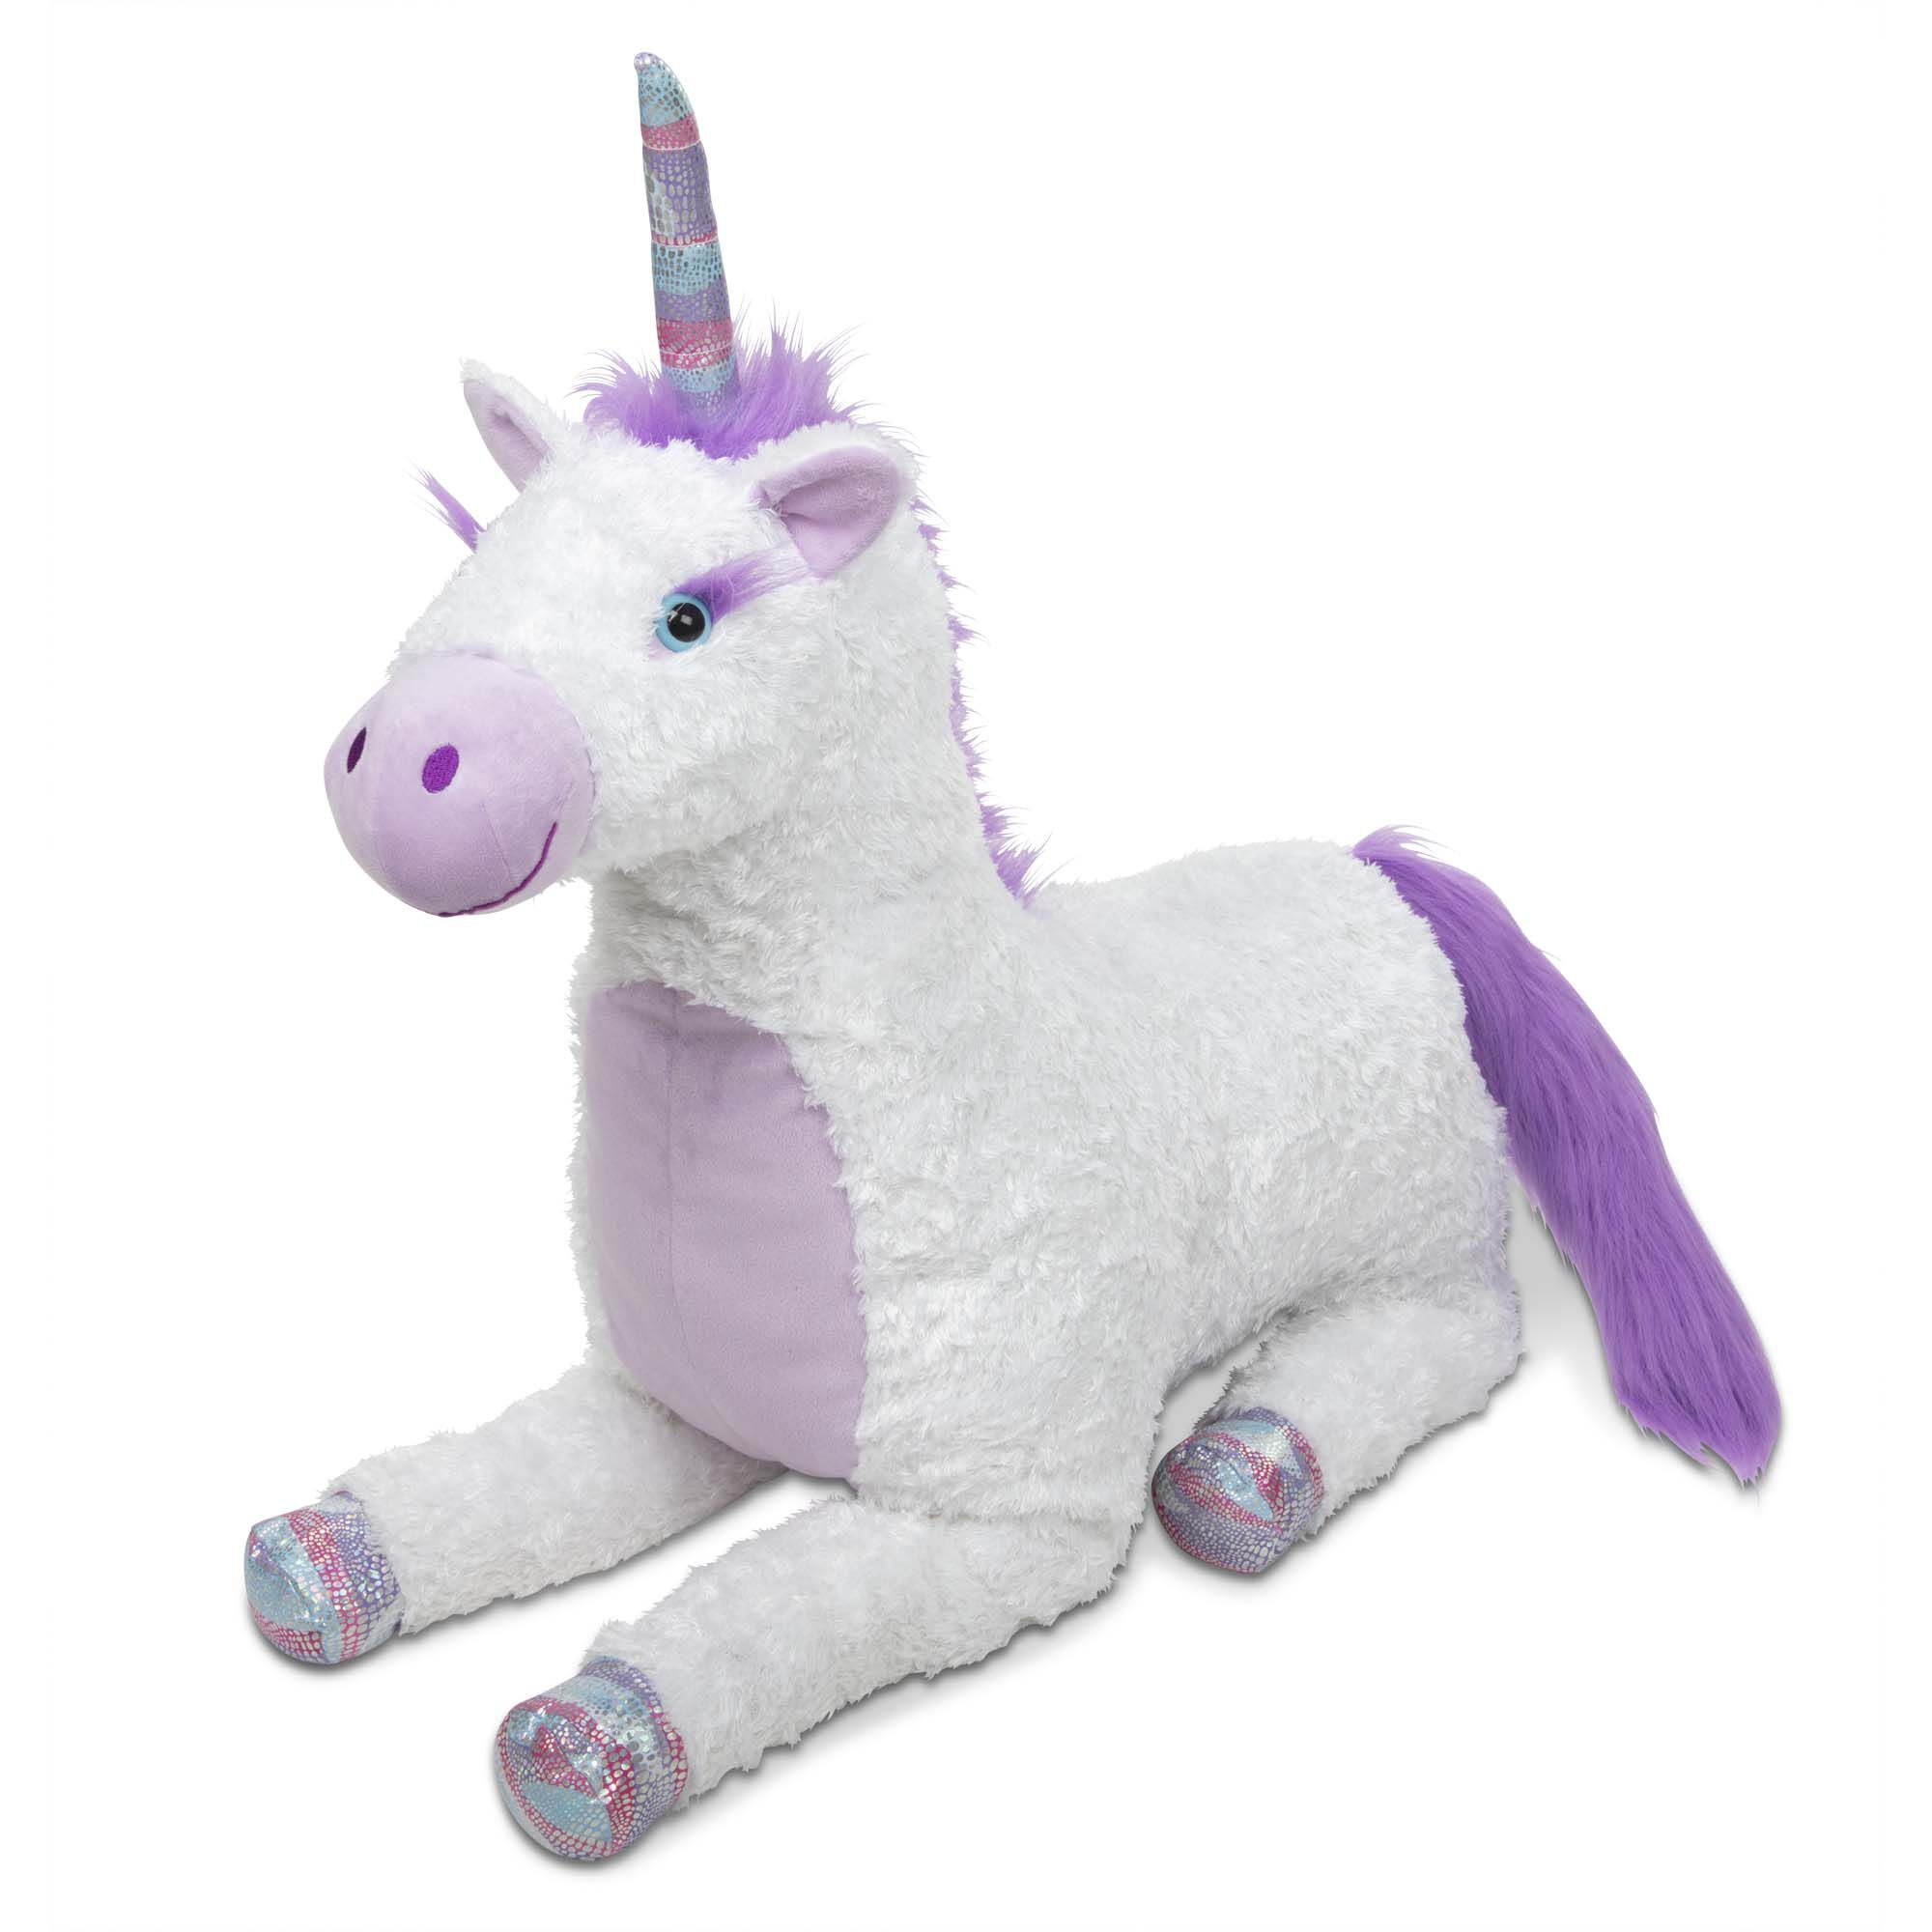 Twos Company Wooden Hand-Crafted Unicorn Collection Unicorn Stacking Toy